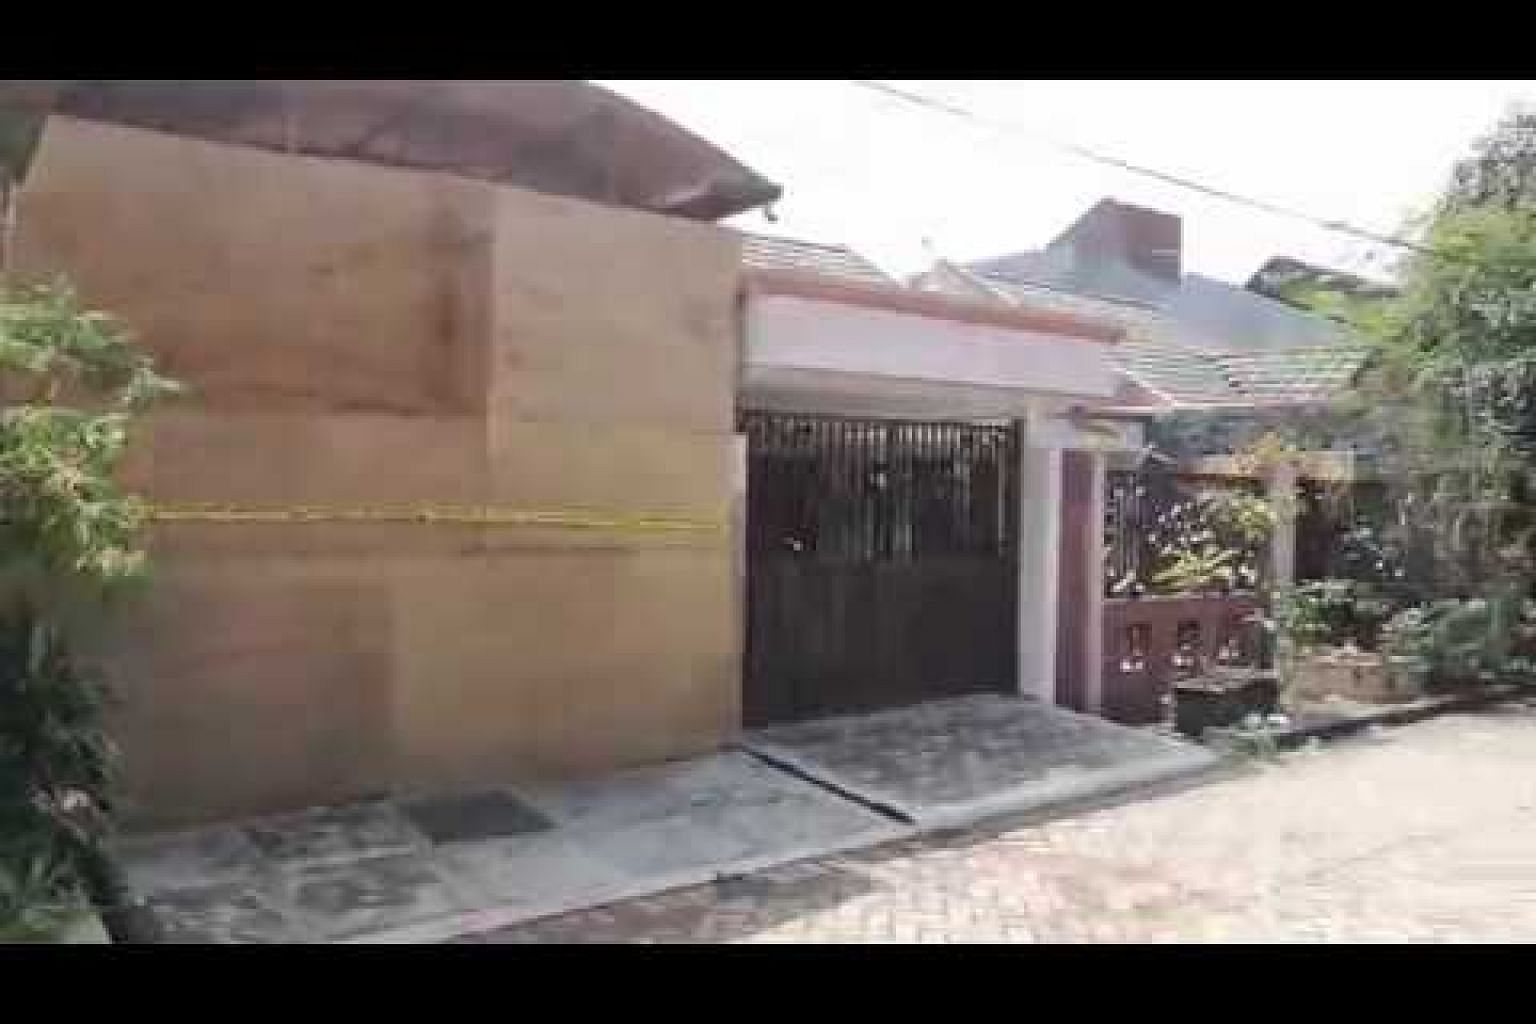 Suicide bomber Dita Oepriarto's home